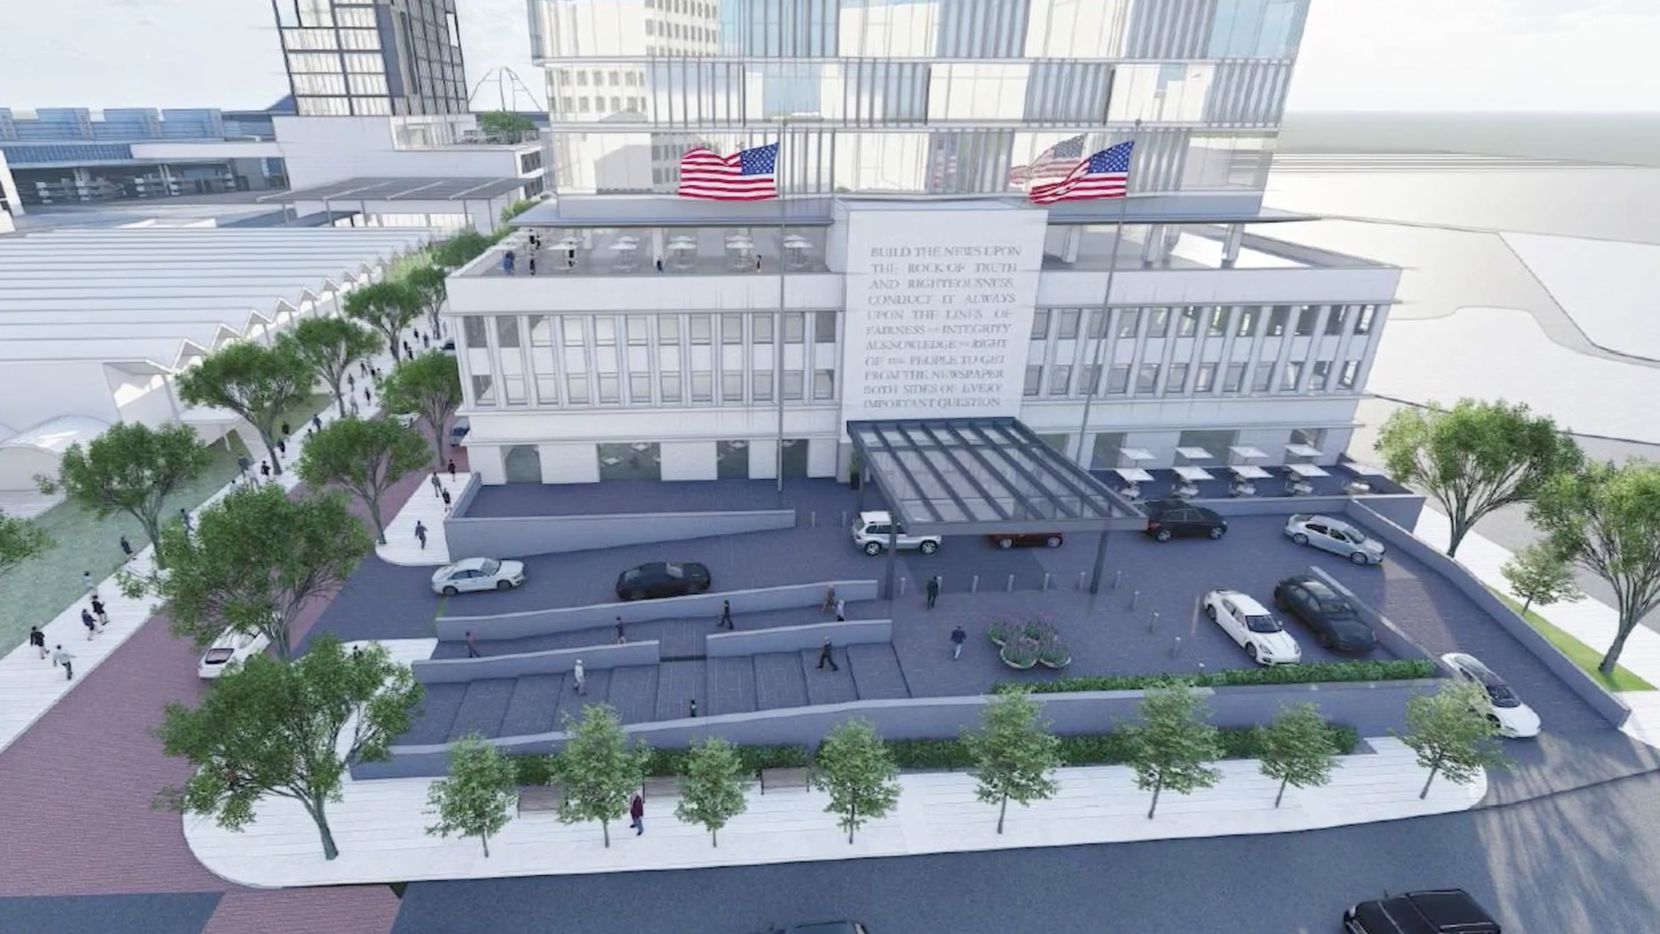 A rendering of how the former headquarters of The Dallas Morning News may be redeveloped.